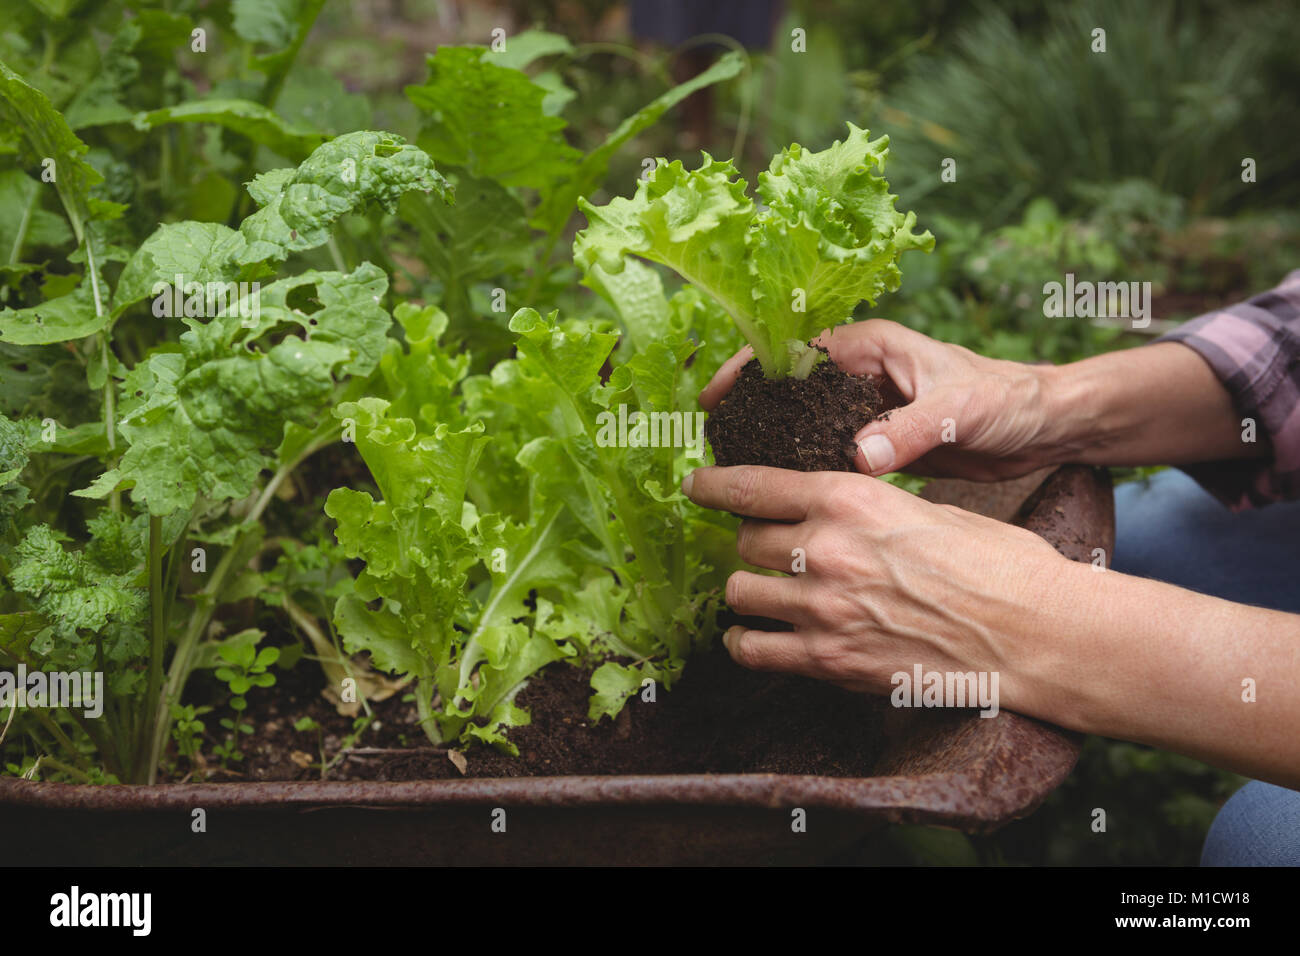 Mid section of woman examining plant - Stock Image